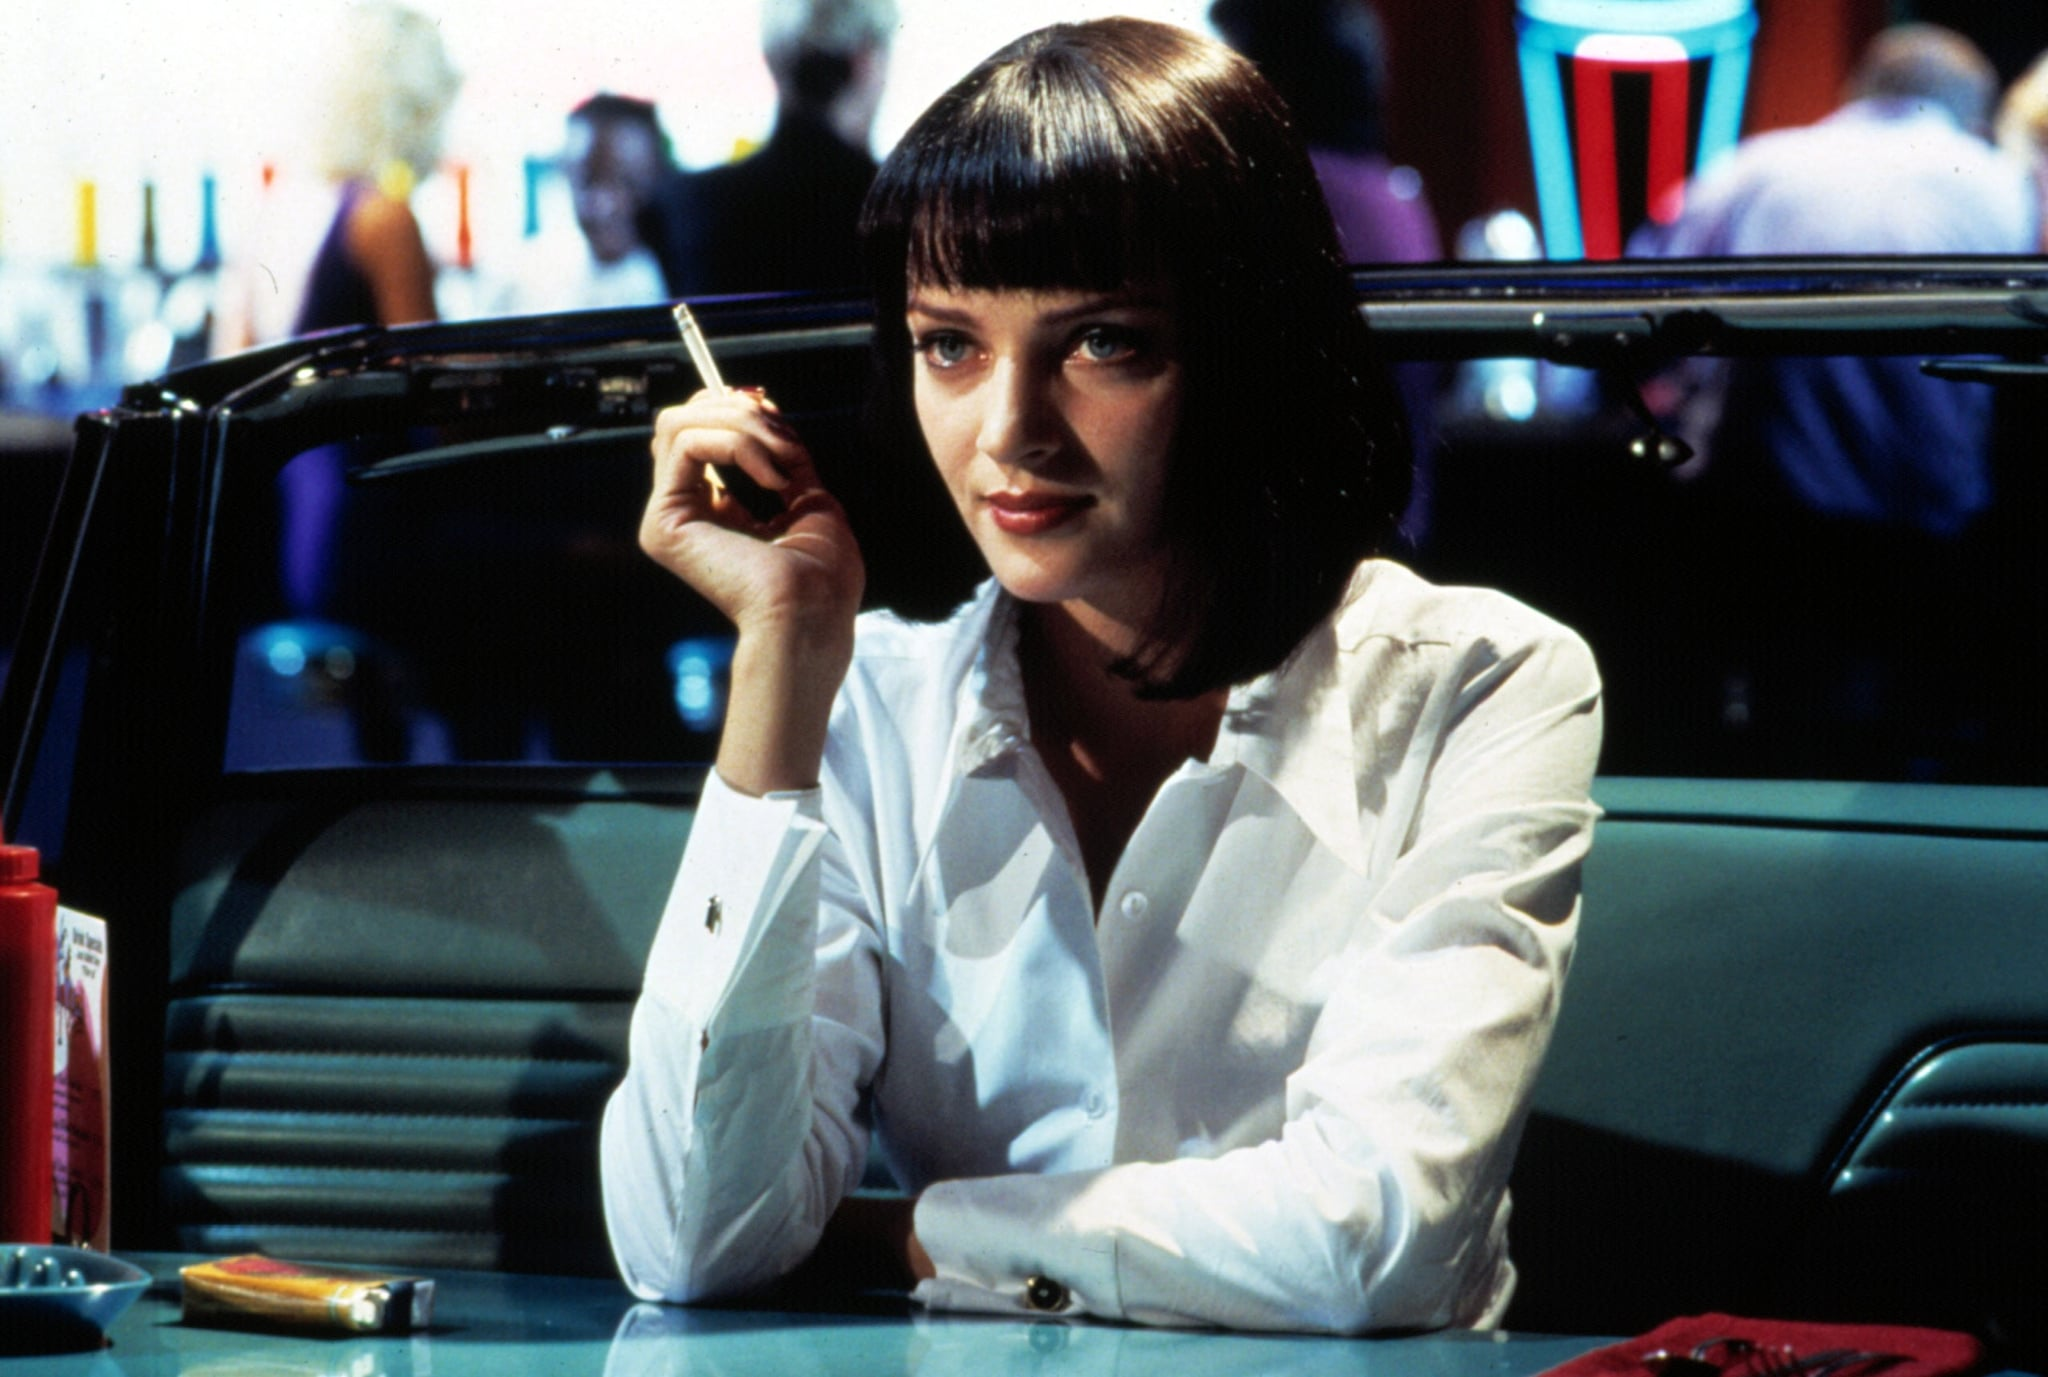 Mia Wallace Pulp Fiction 15 Last Minute Pop Culture Costumes Popsugar Entertainment Photo 8